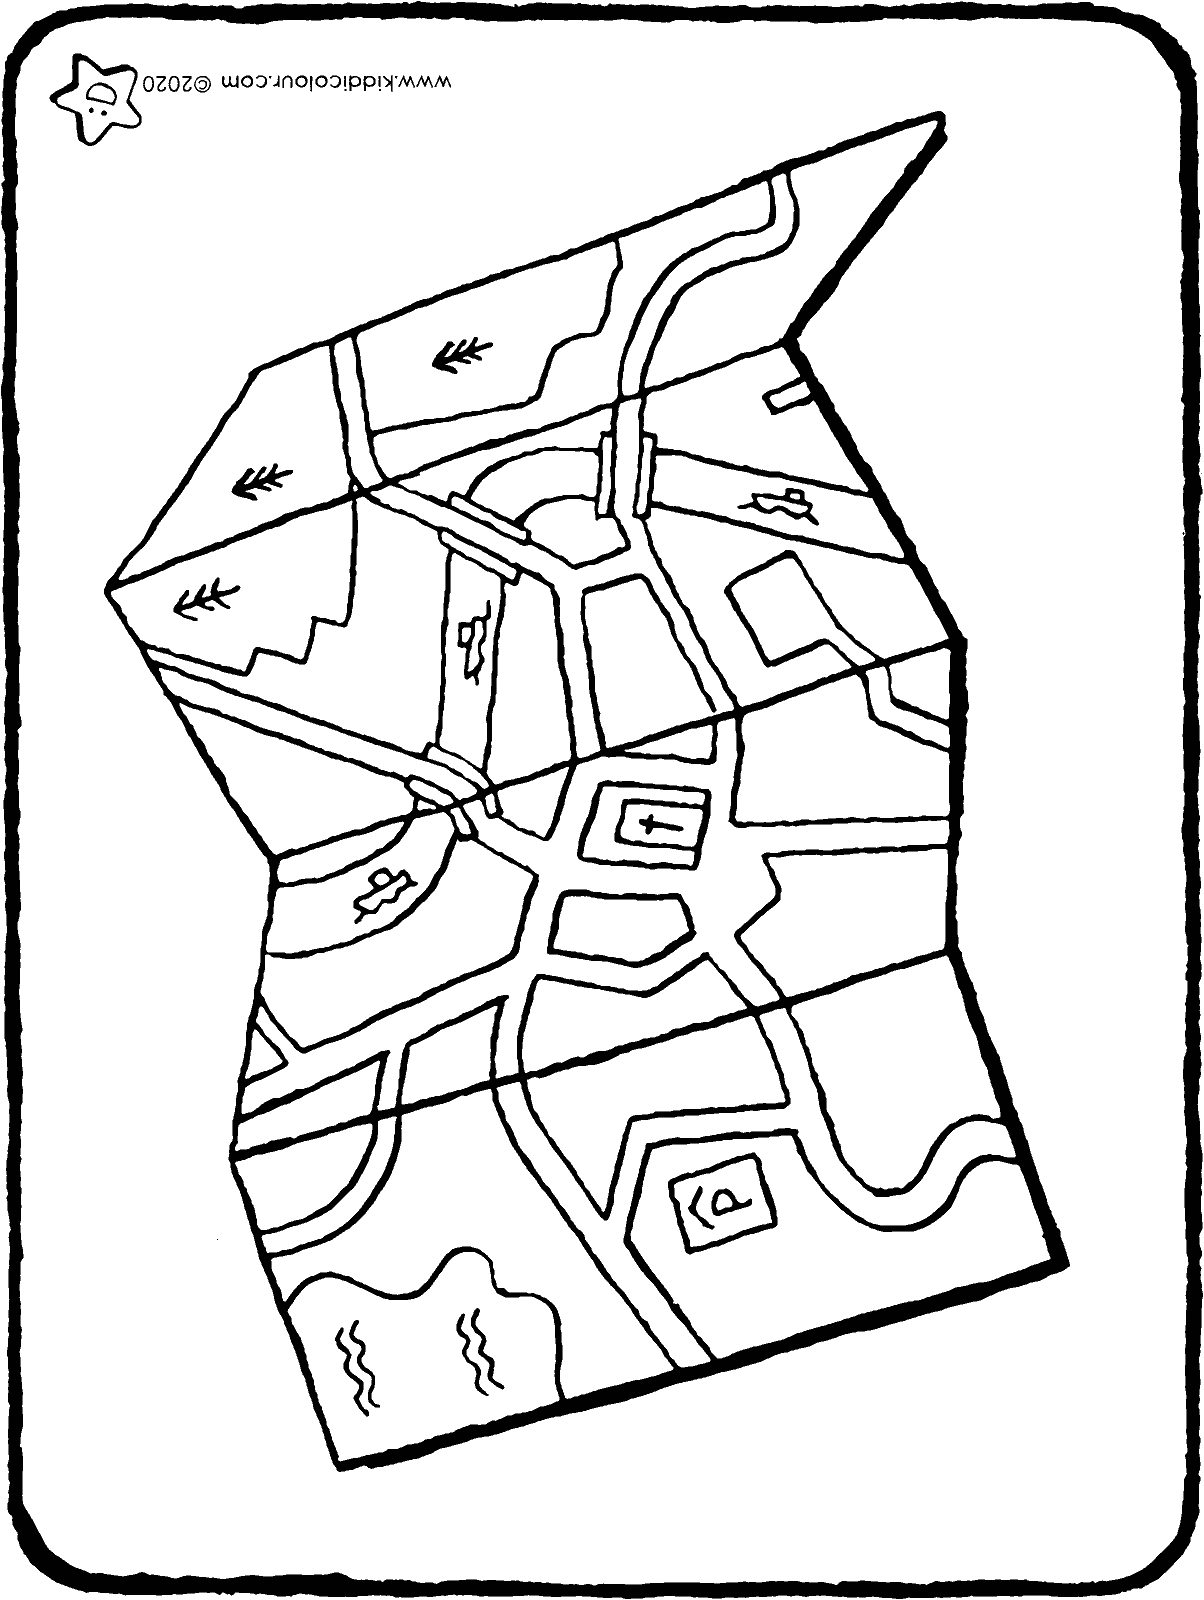 map colouring page drawing picture 01H